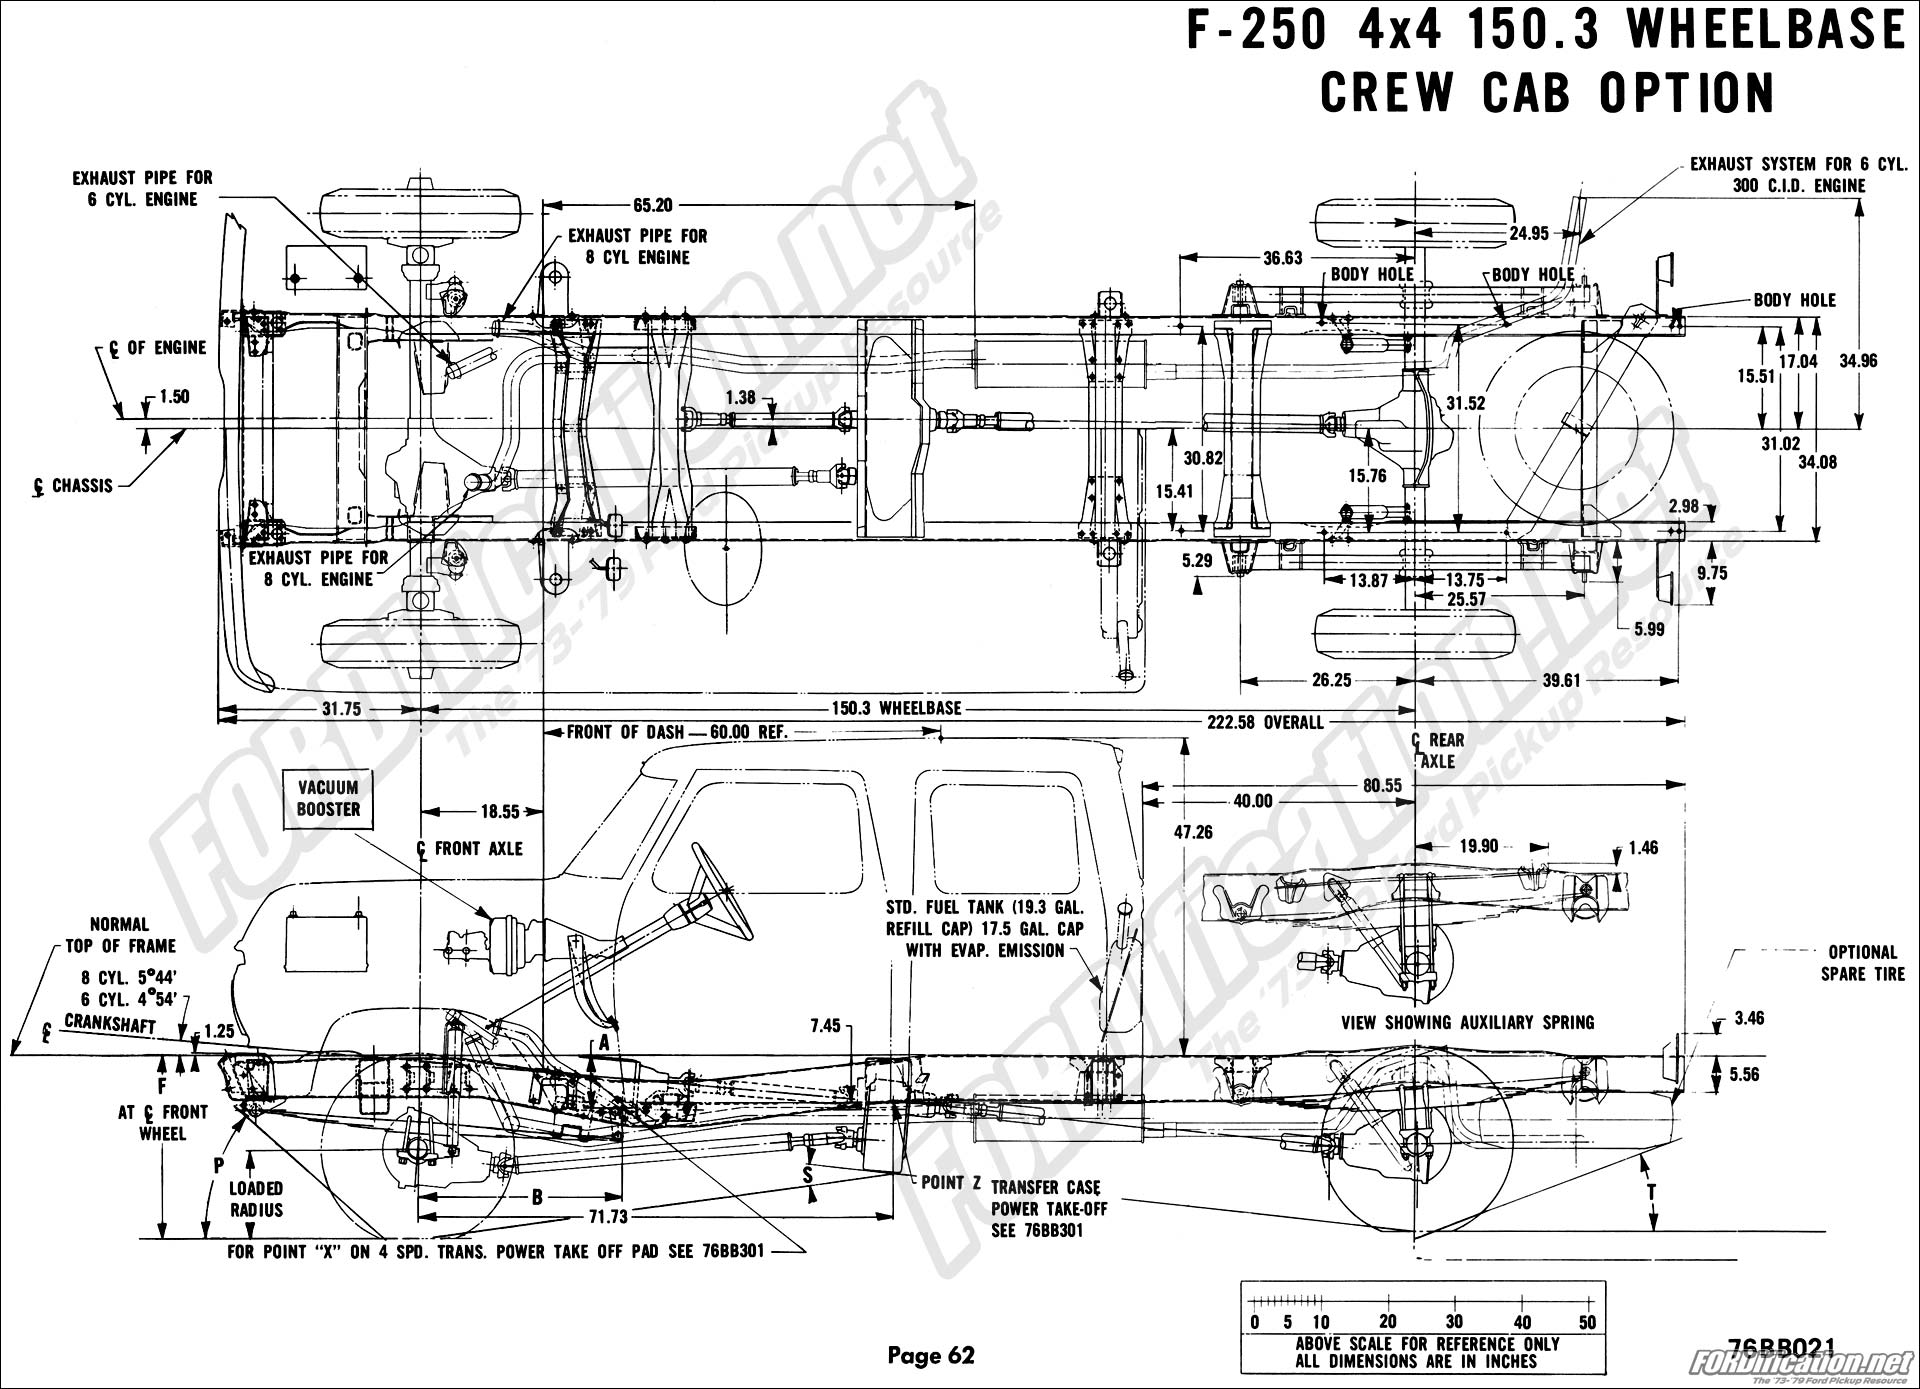 Post 1999 Chevy Tahoe Parts Diagram 467226 likewise Brake System likewise Ford Leveling Lift Kit 570c further Cabin Cooling Poor 203424 as well How Turn Better Than Sti Cheap 10696. on 2000 ford ranger body parts